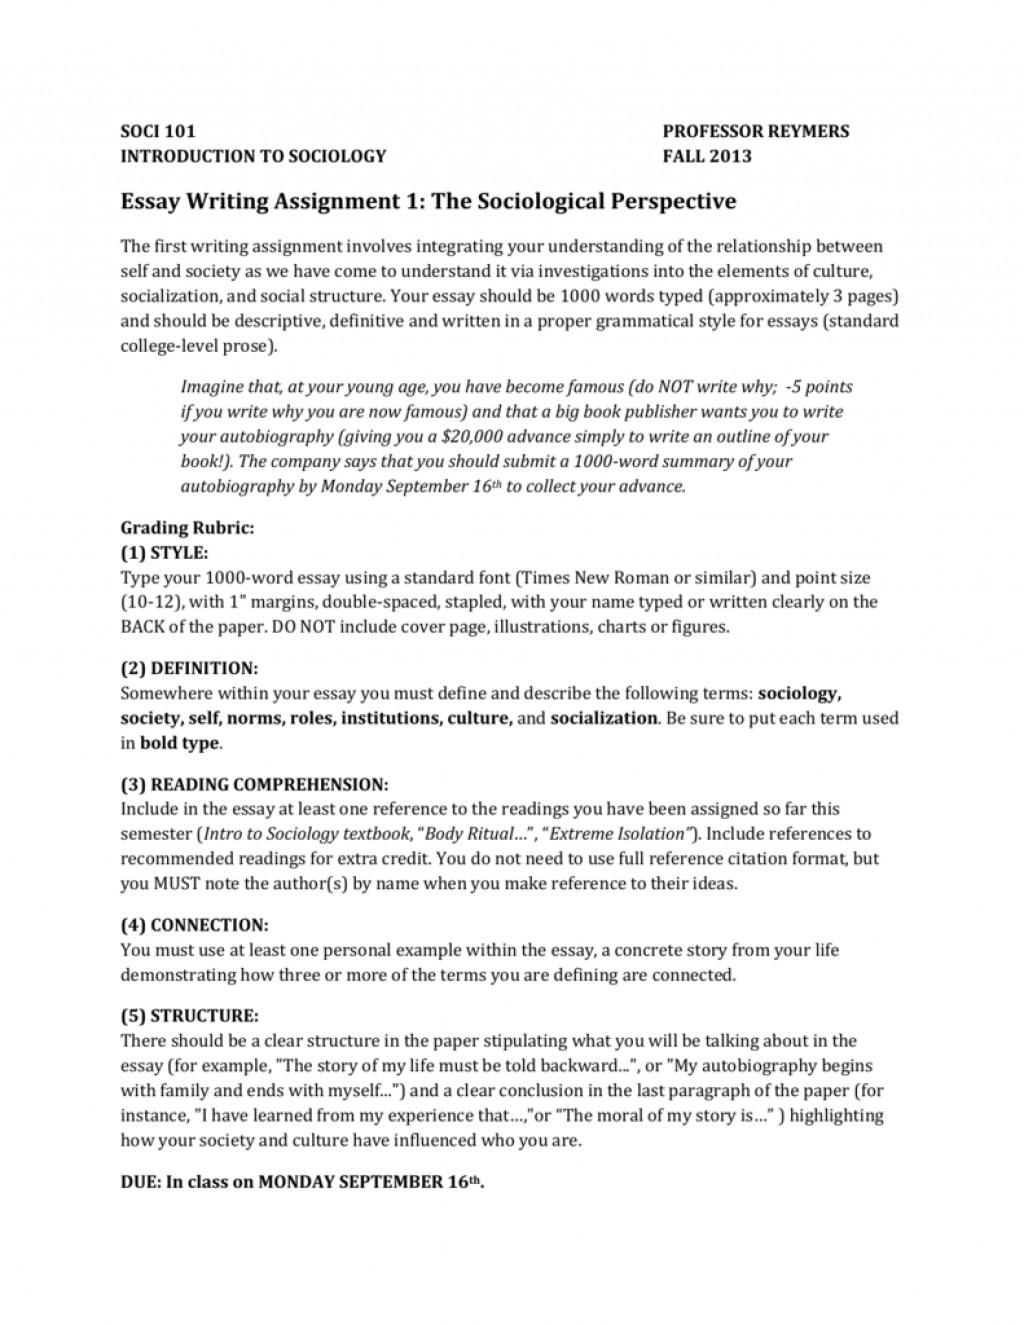 018 Essay Example Name Writing Assignment The Sociological Perspective Where To Put Your On Scholarship 008345038 1 An Apa Uk Write College Exceptional Mla Format Date Names In English Topic List Large